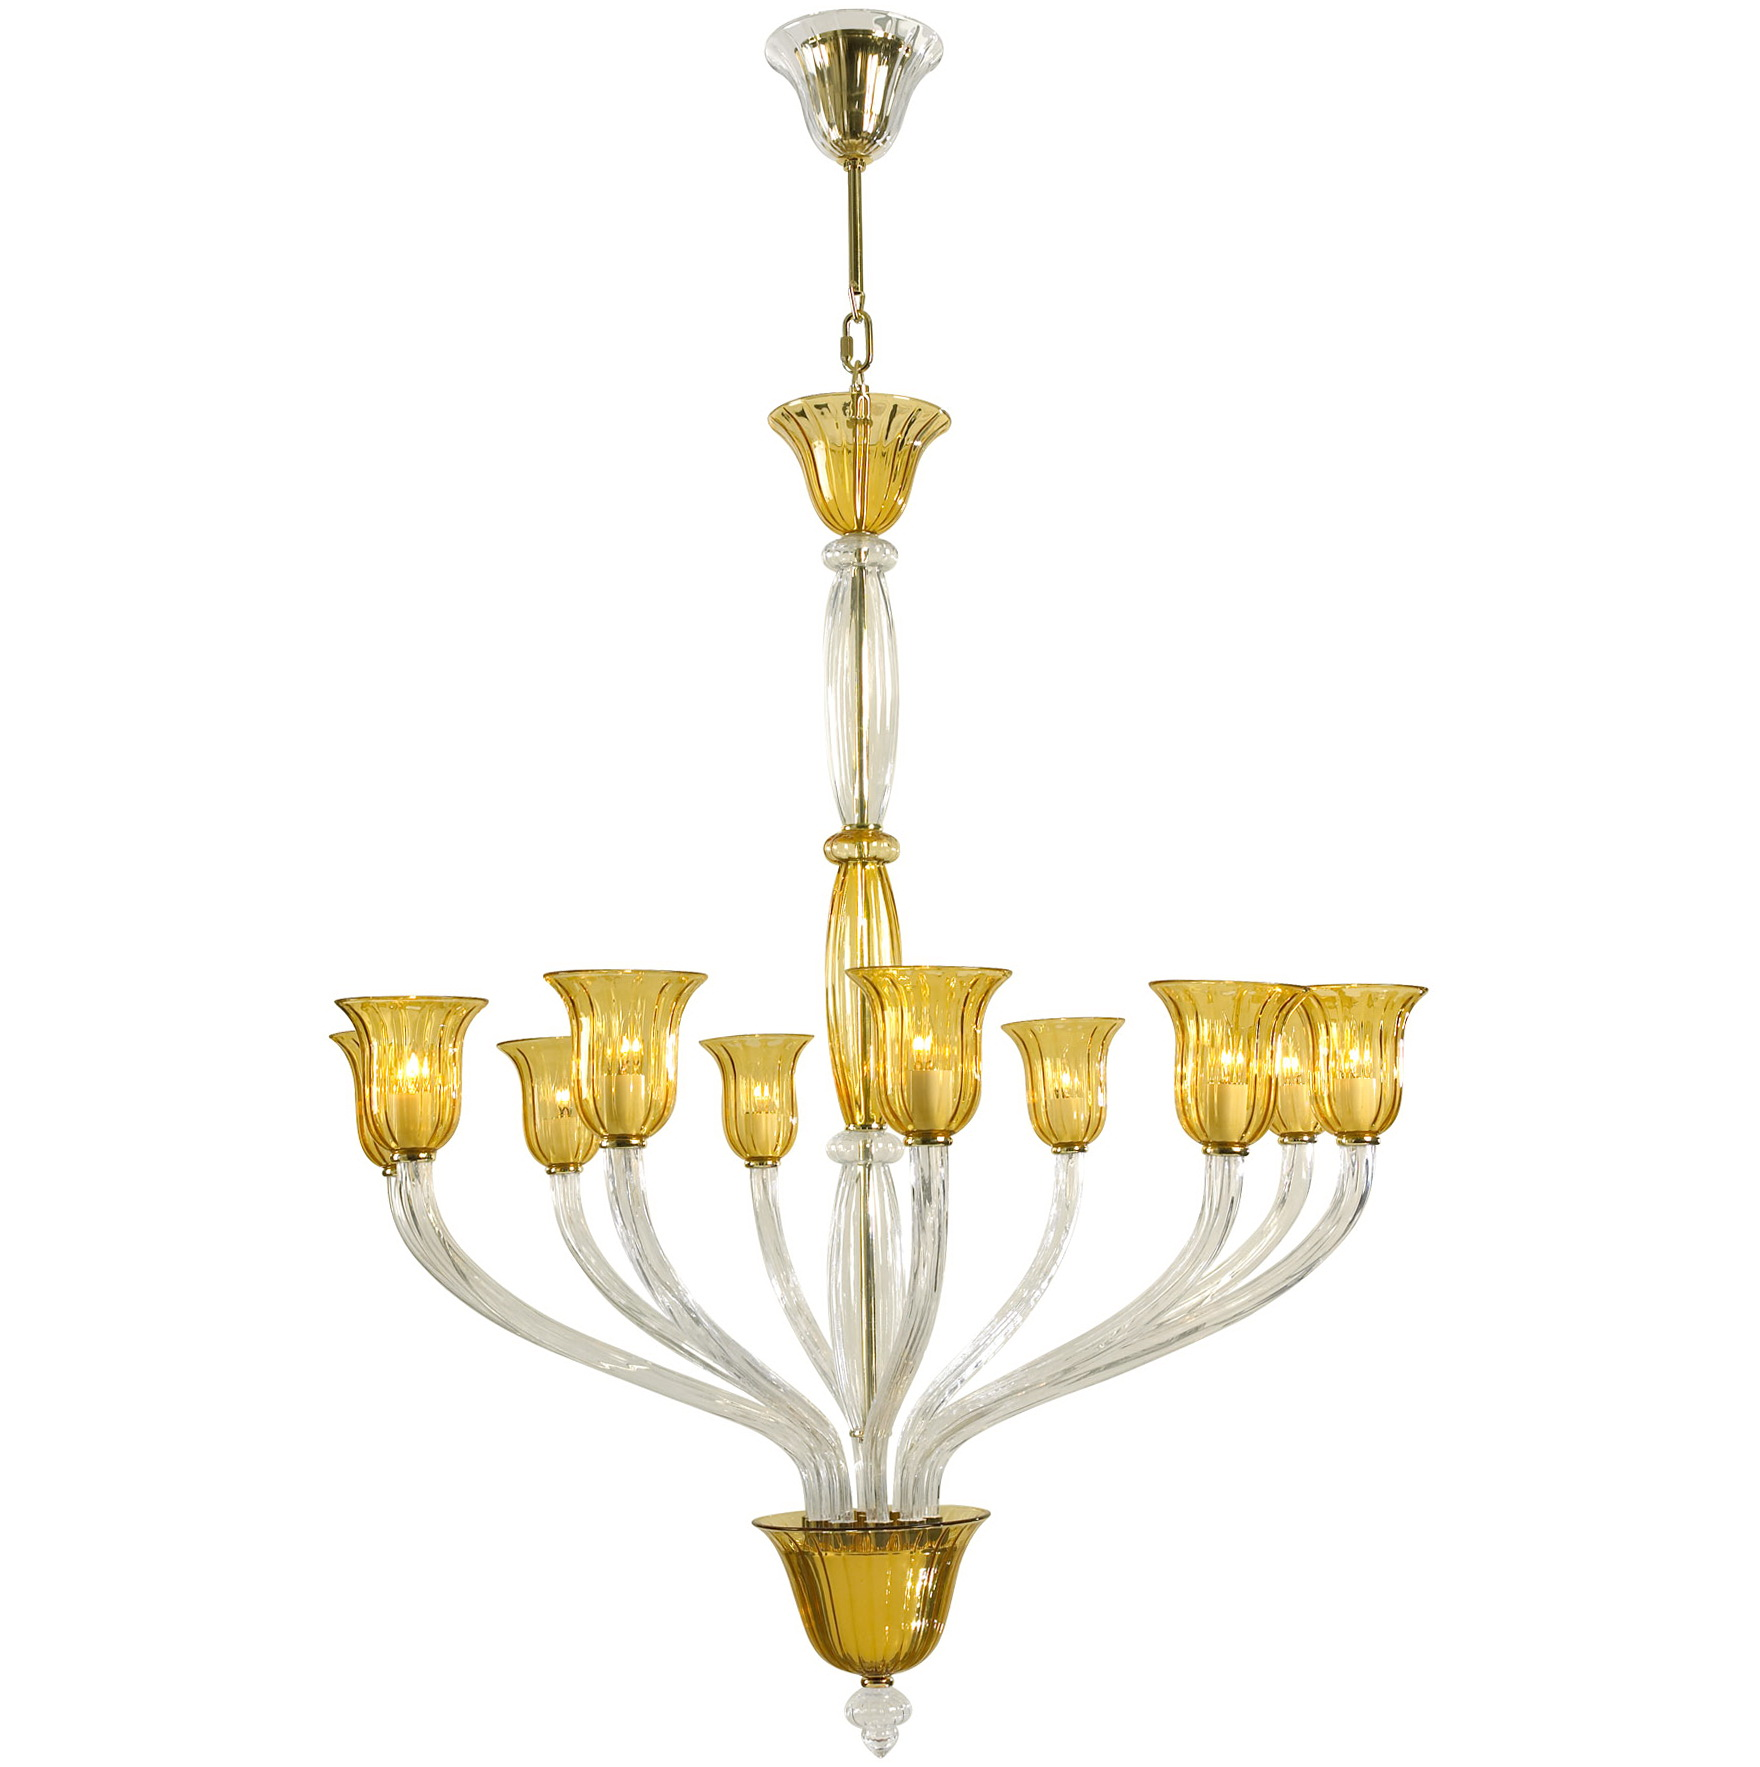 Murano glass chandeliers for sale home design ideas - Chandeliers on sale online ...